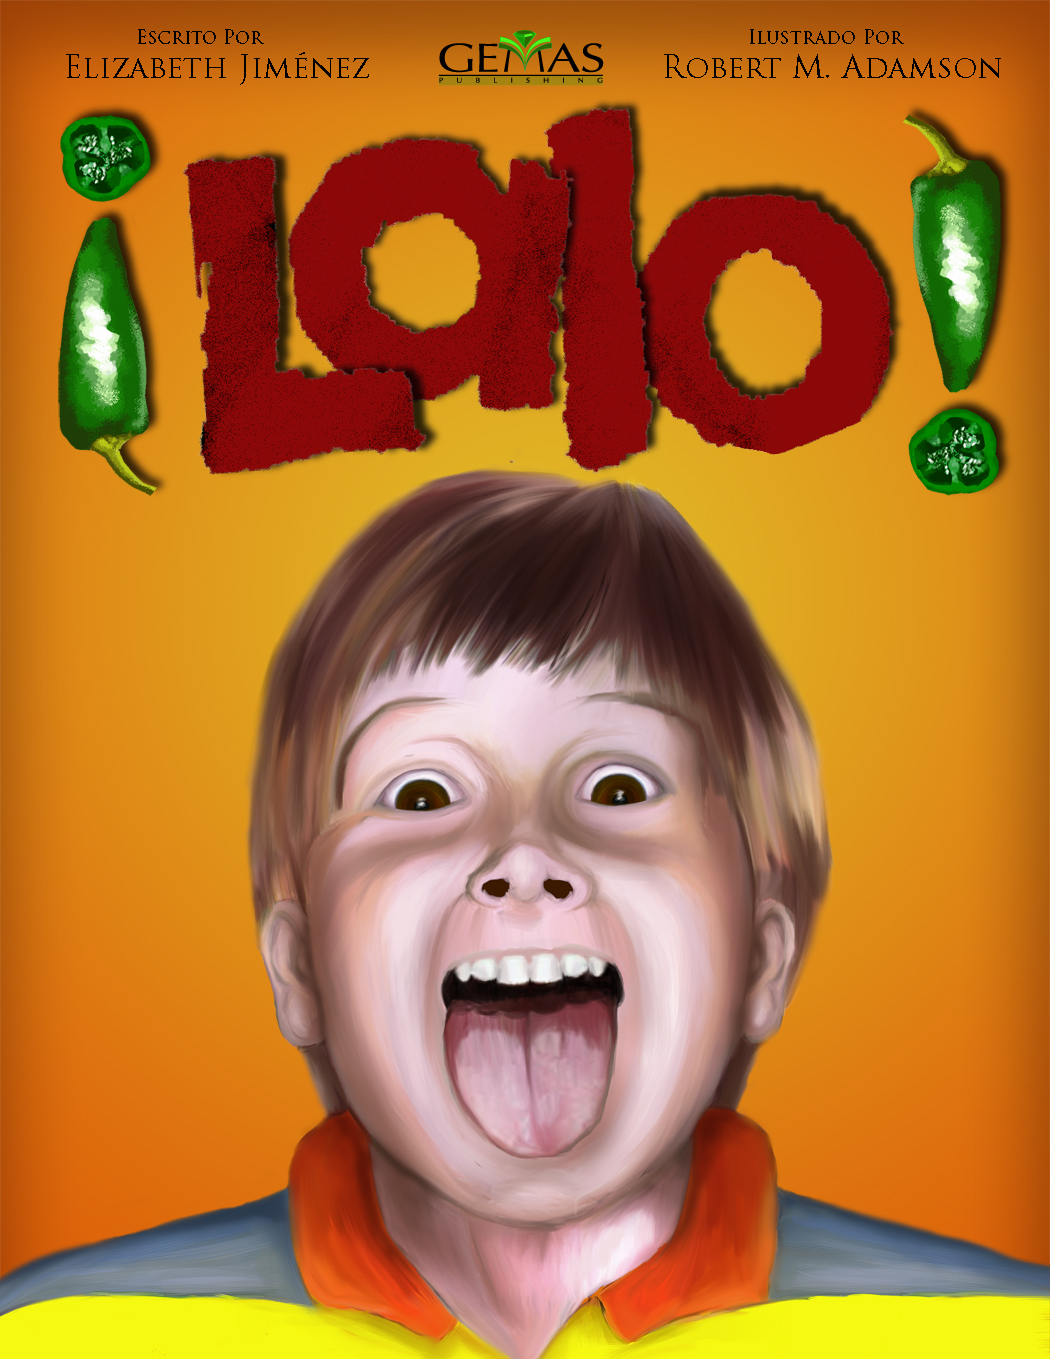 Cover of the book titled Lalo.